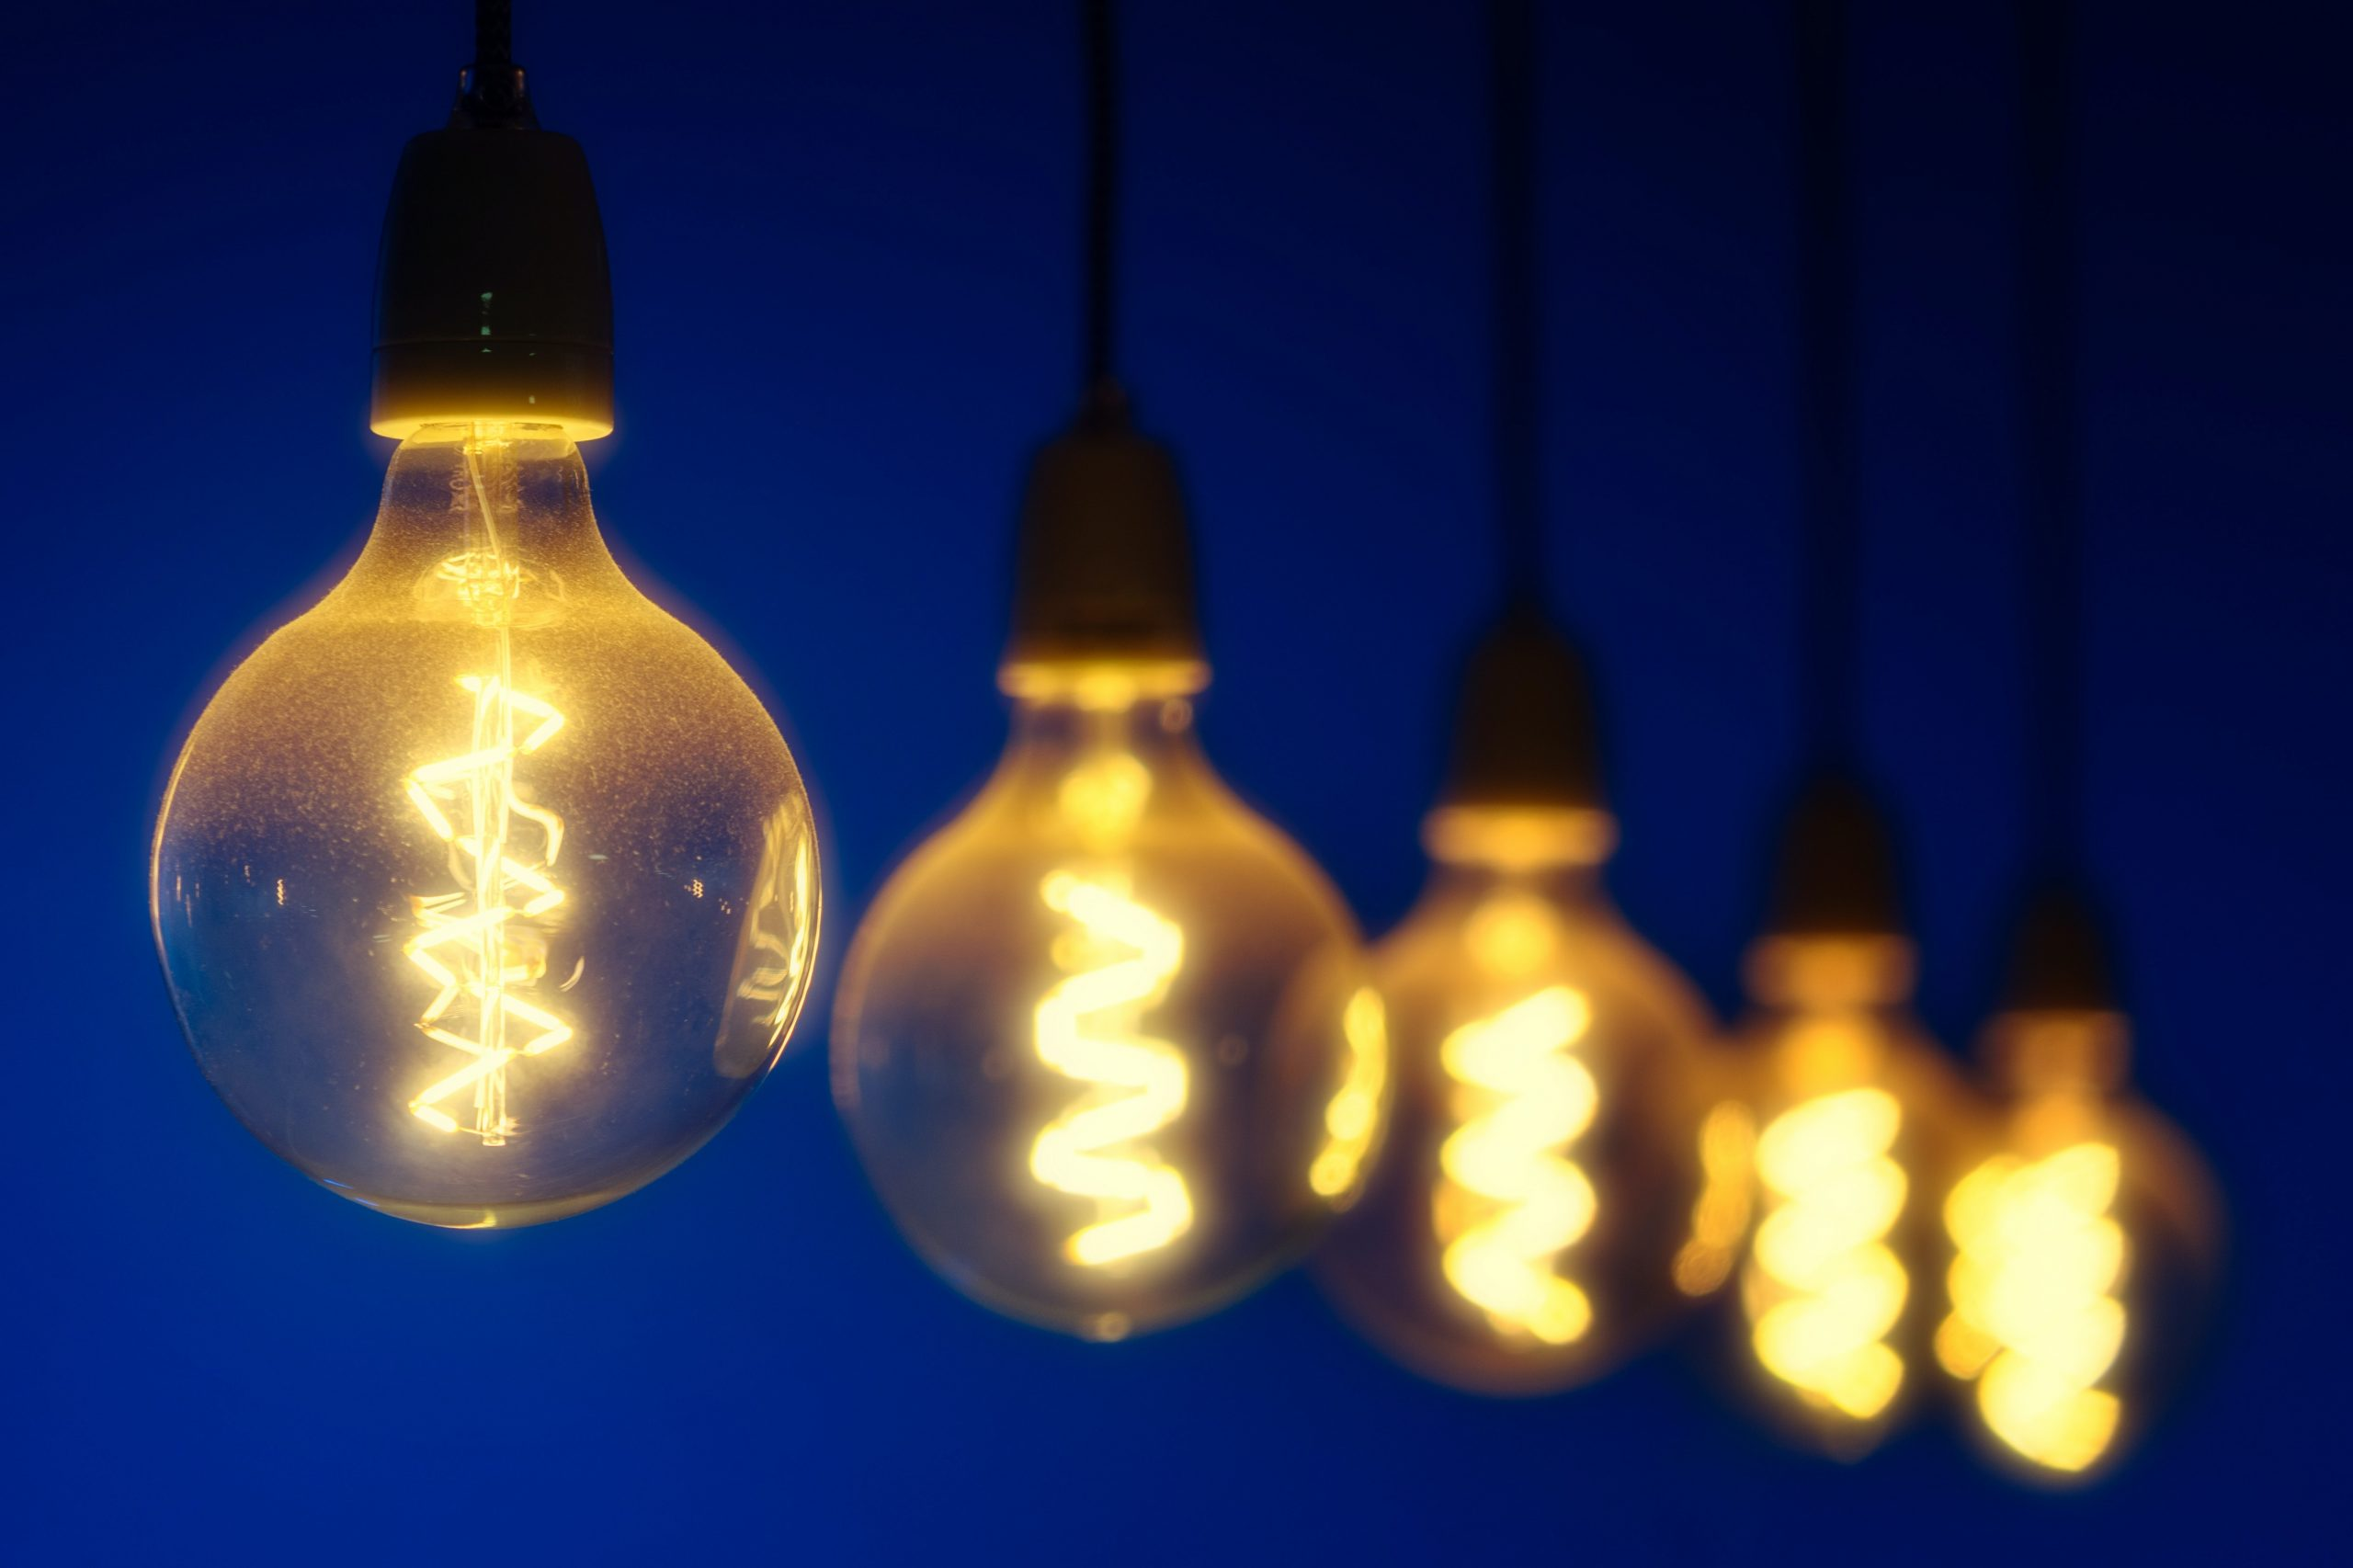 Receding row of lit yellow lightbulbs against a dark blue background